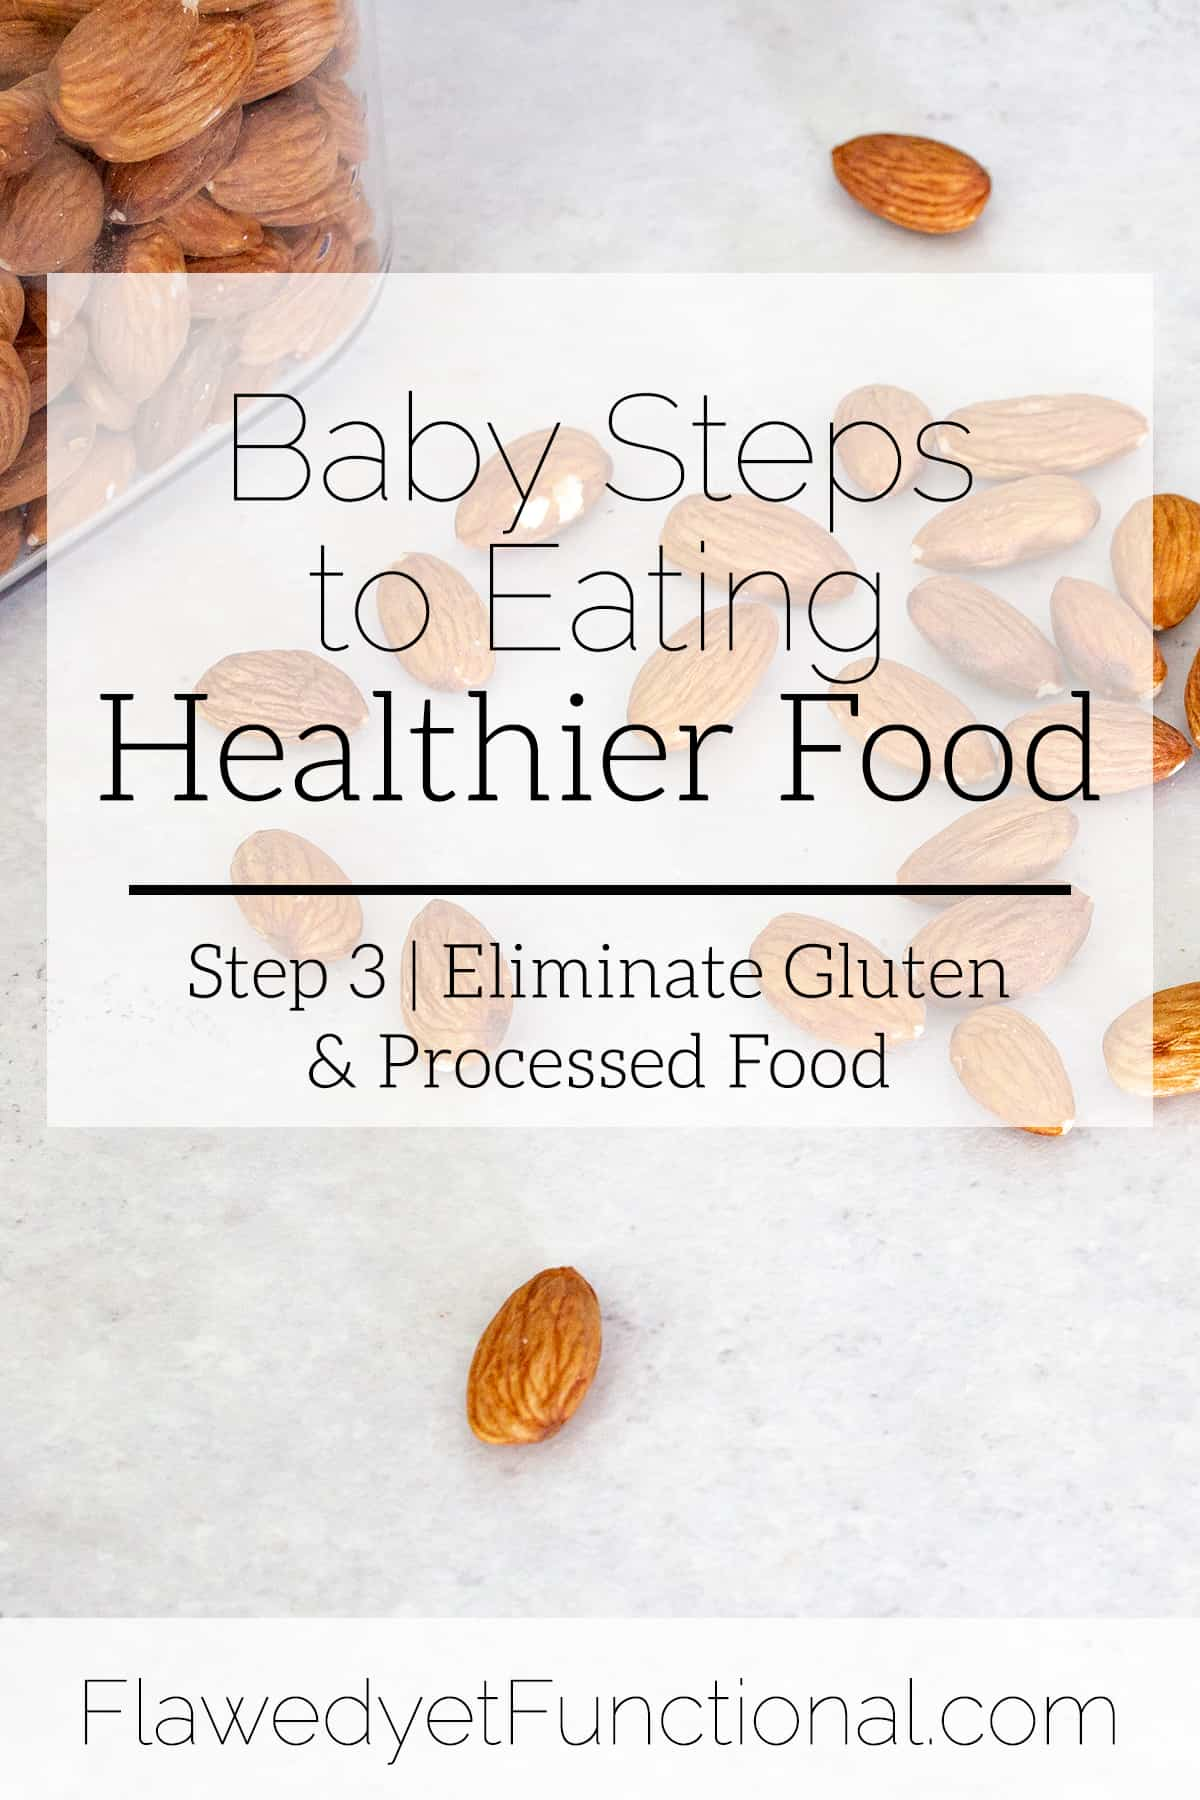 Baby Steps to Eating Healthier Food | Eliminate Gluten & Processed Food